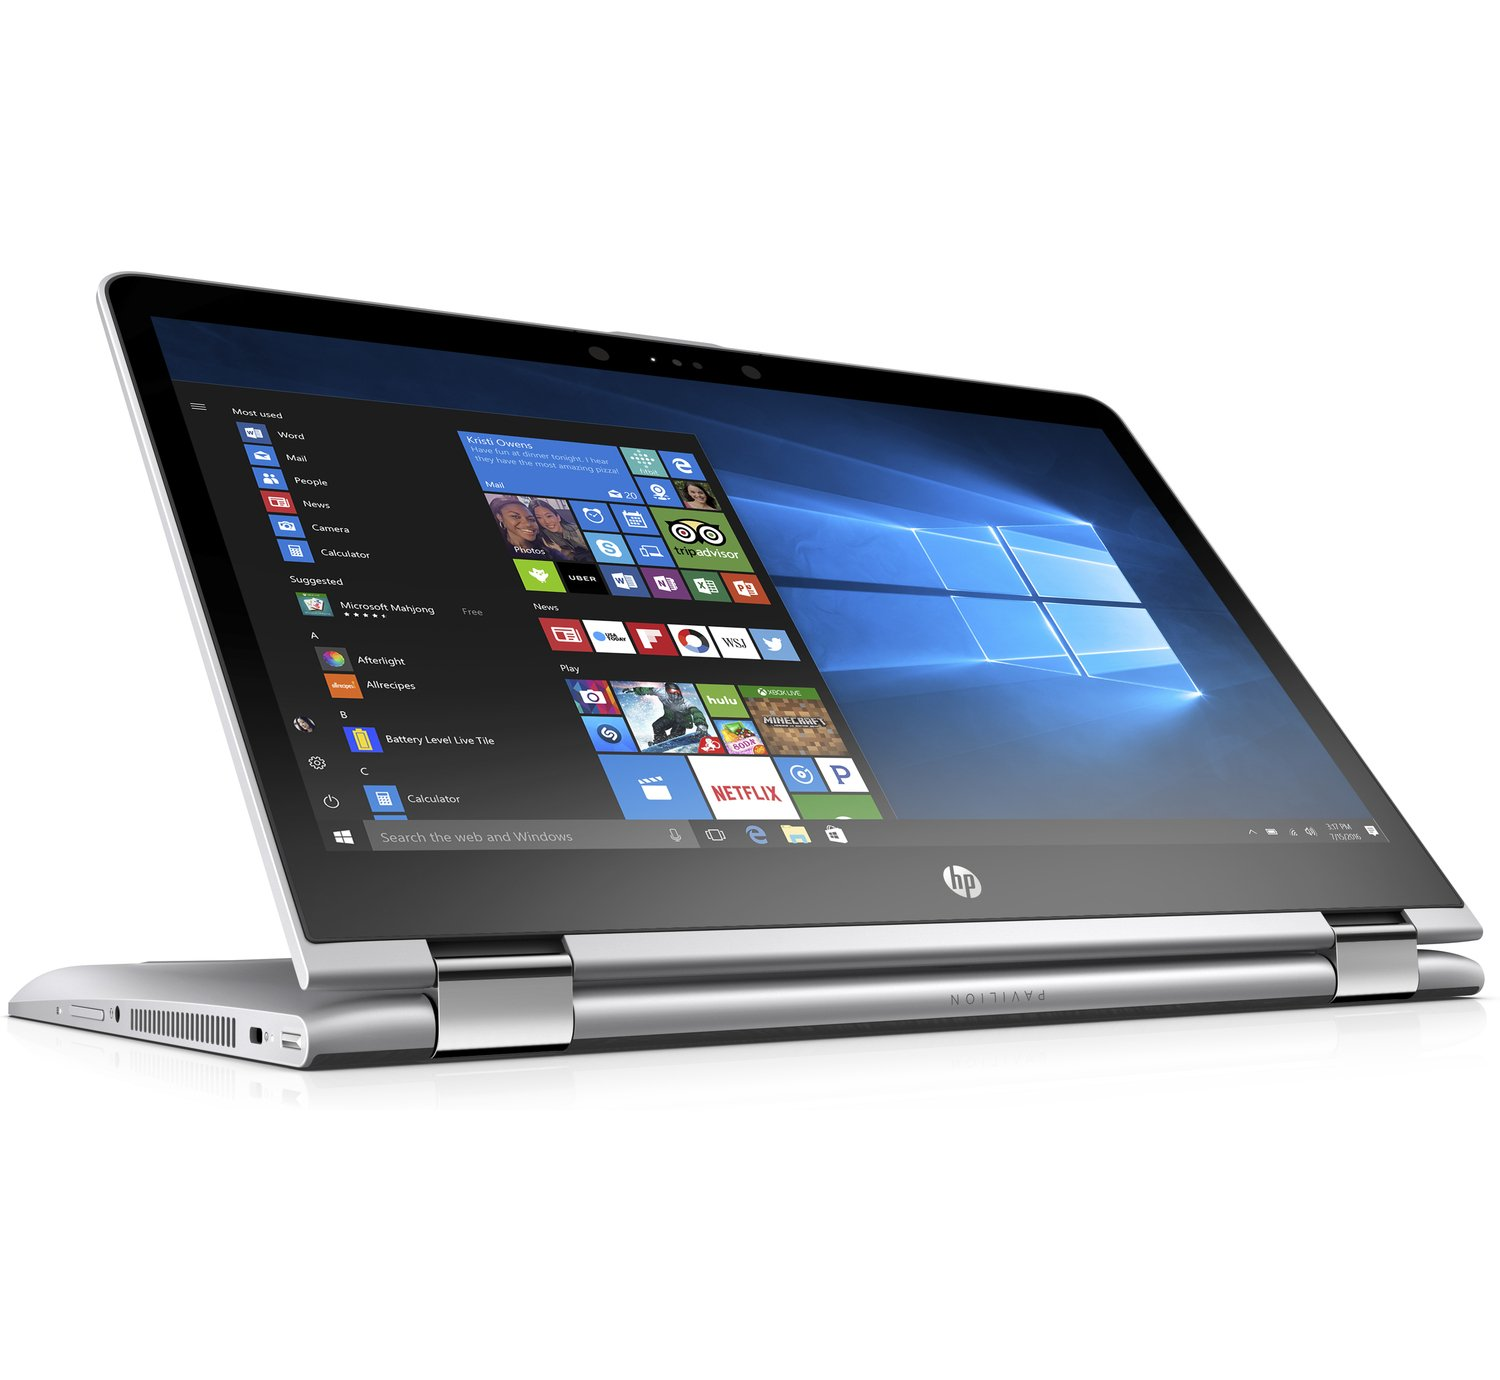 Buy Hp Pavilion X360 14 Ba123tu 14 Inch Touchscreen Convertible Laptop 8th Gen Intel I5 8250u 8gb Ddr4 1tb Win 10 Ms Office H And S 2016 Natural Silver Online At Low Prices In India Amazon In